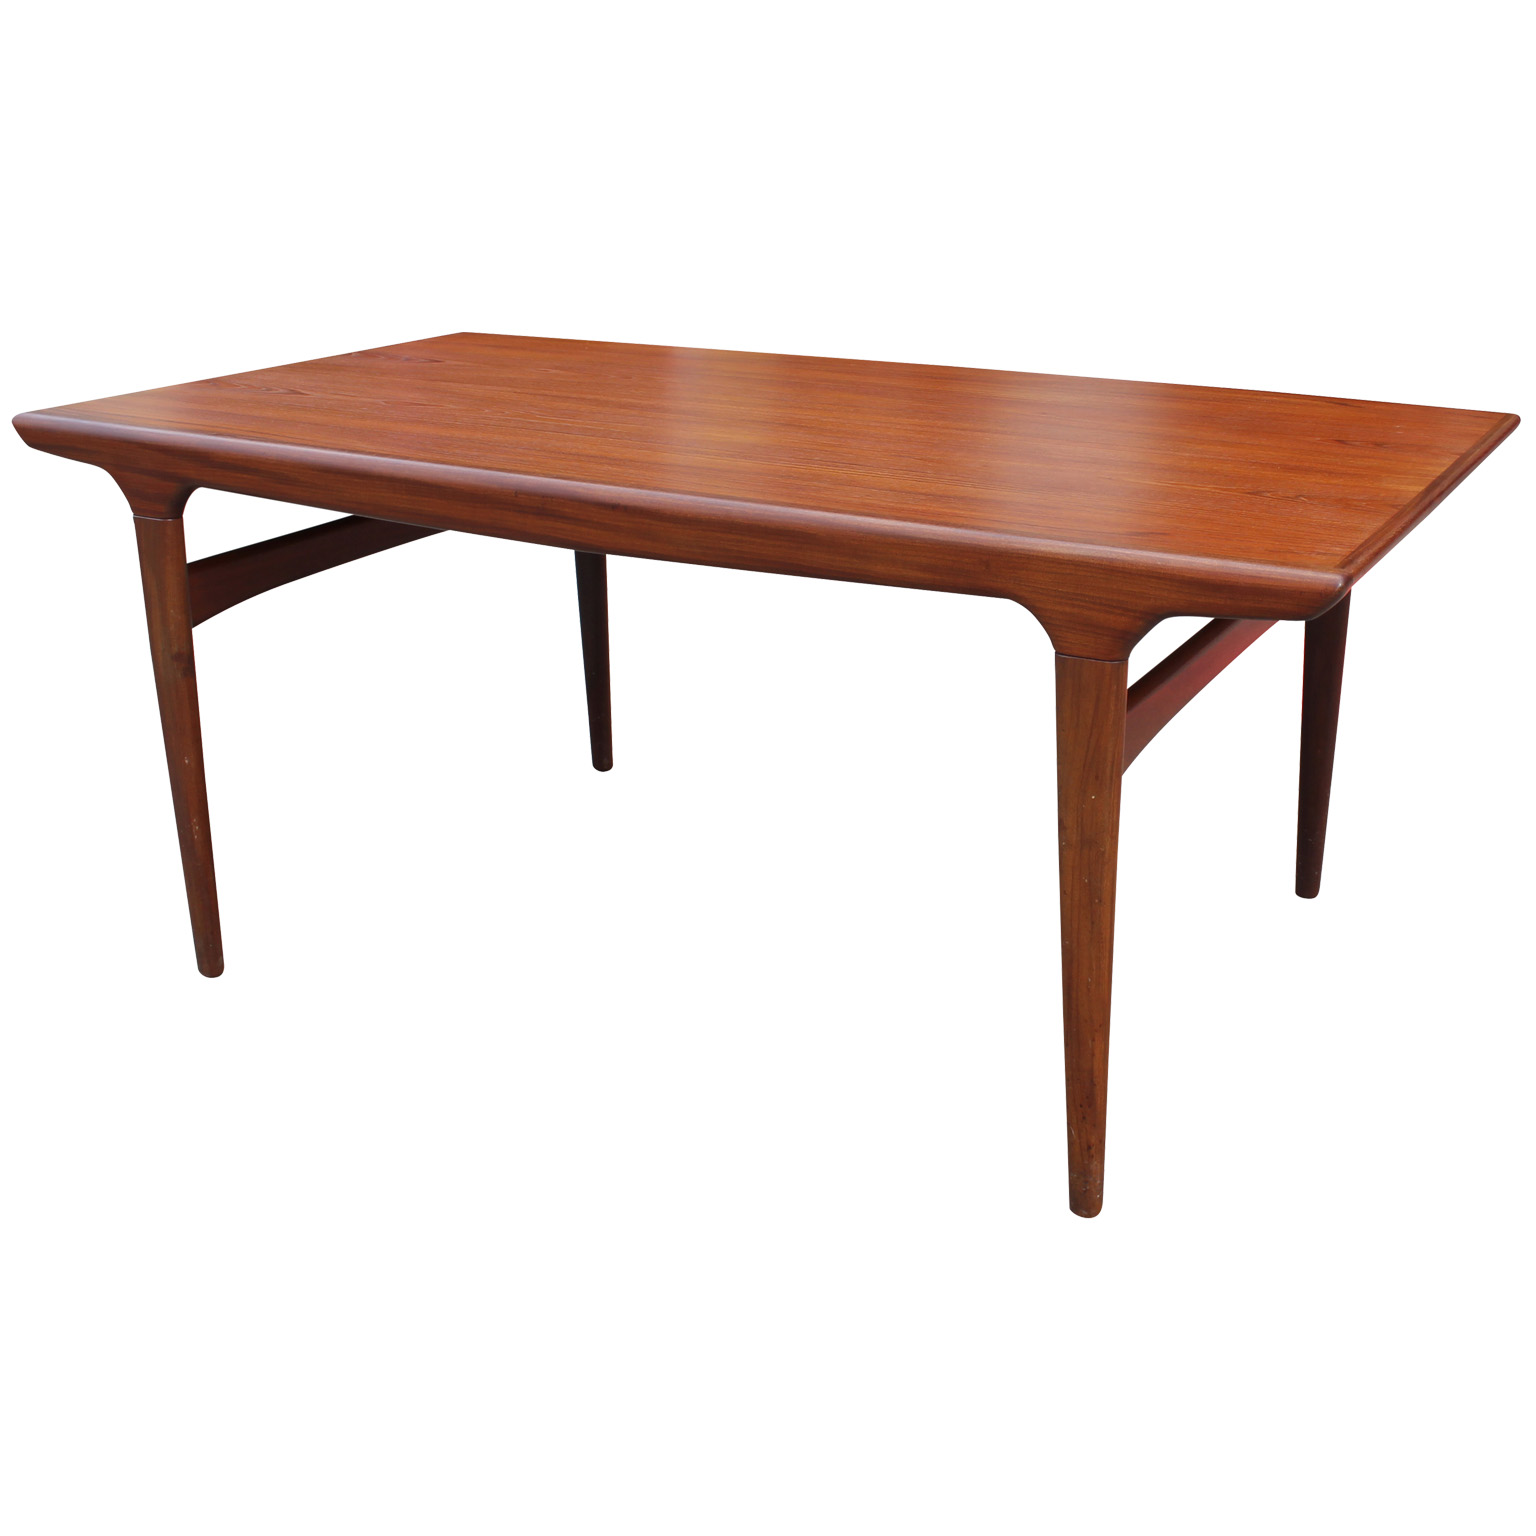 Elegant Danish Teak Dining Table With A Cantilevered Leaf